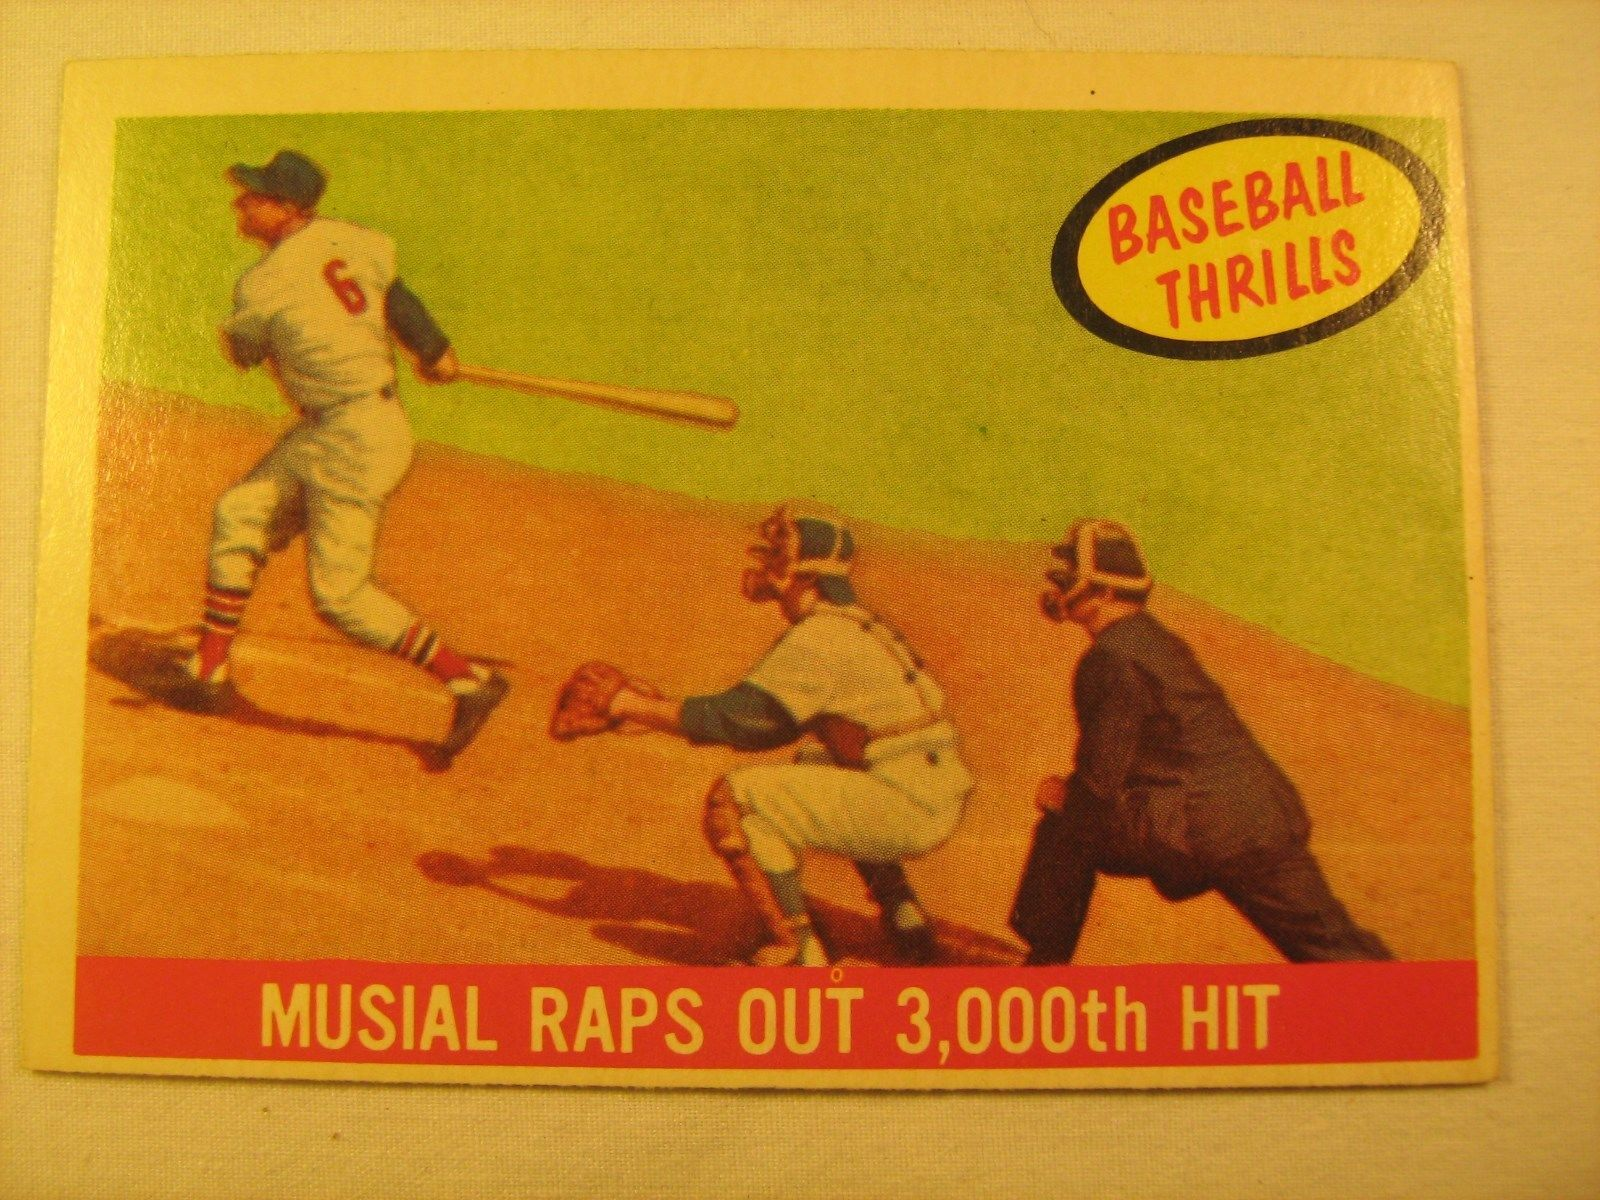 Primary image for MLB Topps Baseball Card 1959 MUSIAL RAP OUT 3,000th HIT #470 Great [b5e6]